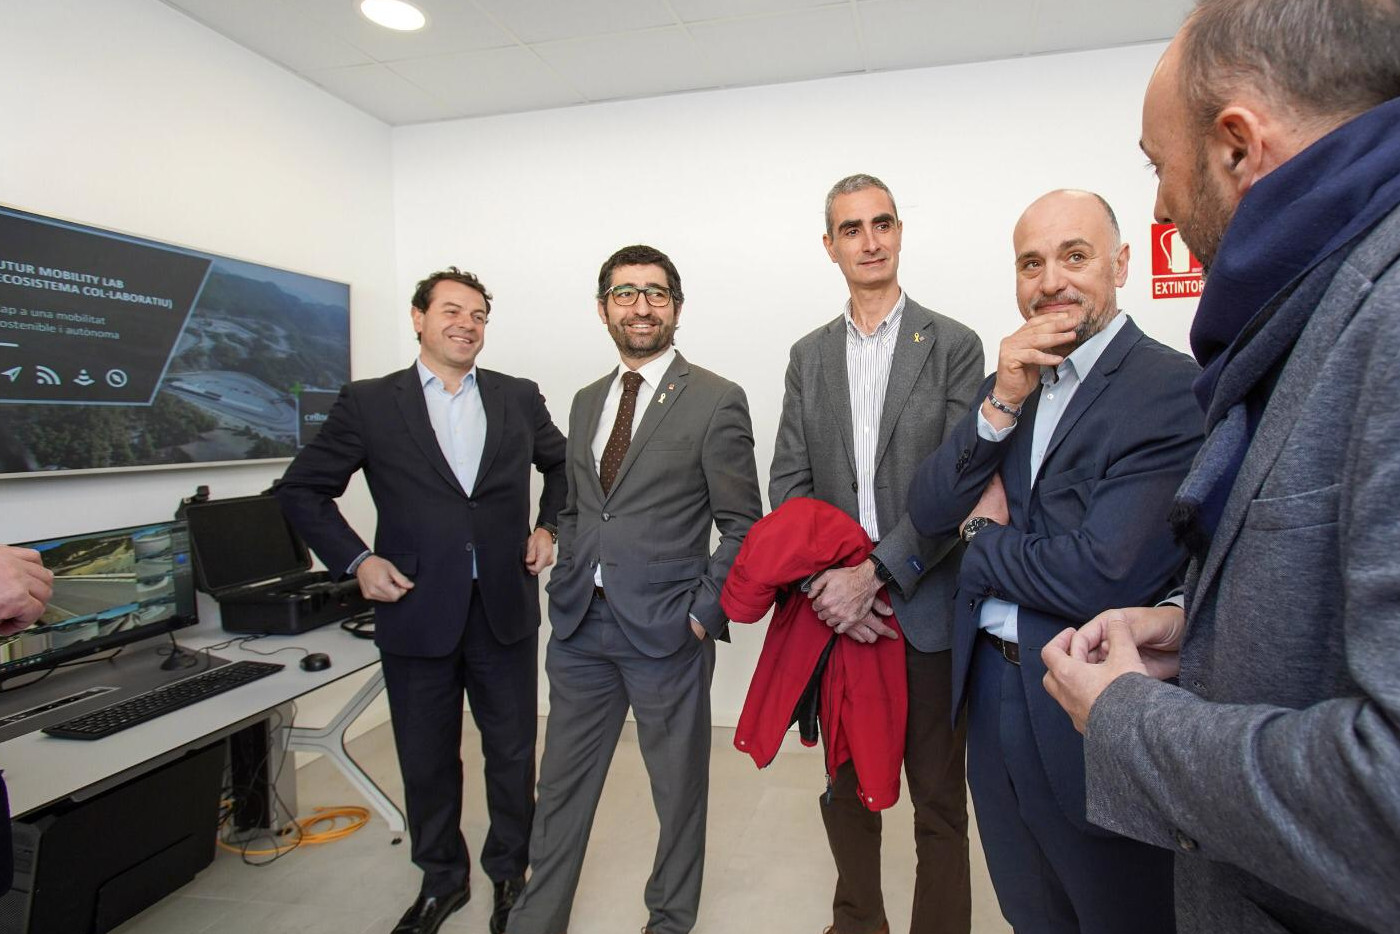 Jordi Puigneró, Councilor Of Digital Policies And Public Administration, Visits Parcmotor Of Castellolí